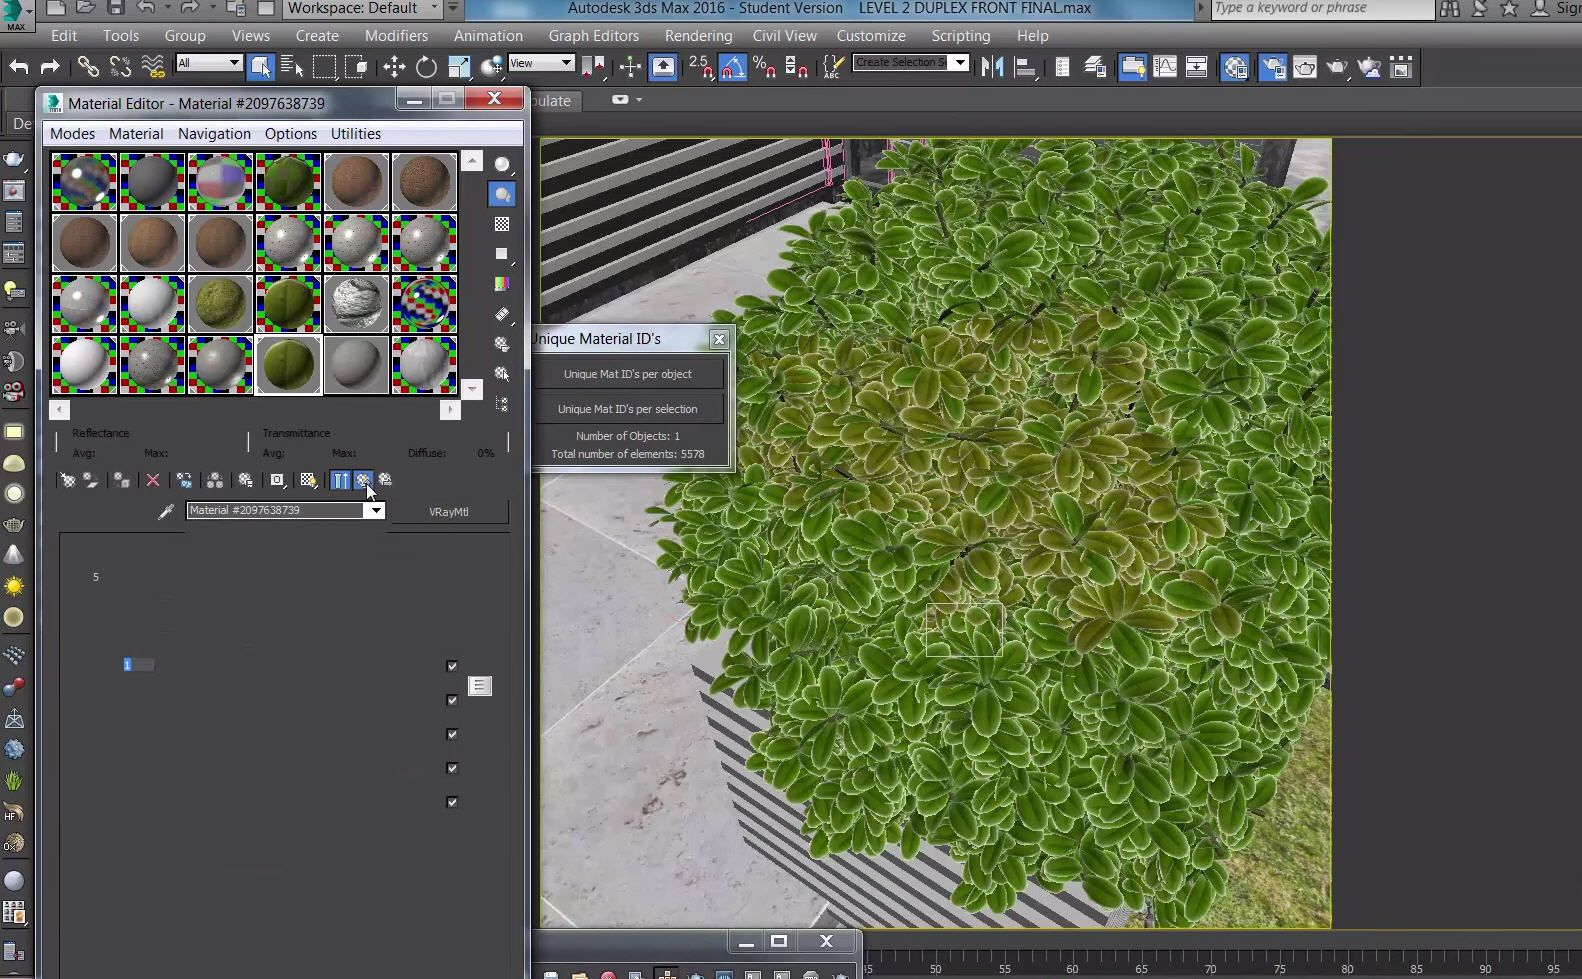 3dsMax ] Lean how to create Realistic Vegetation by using